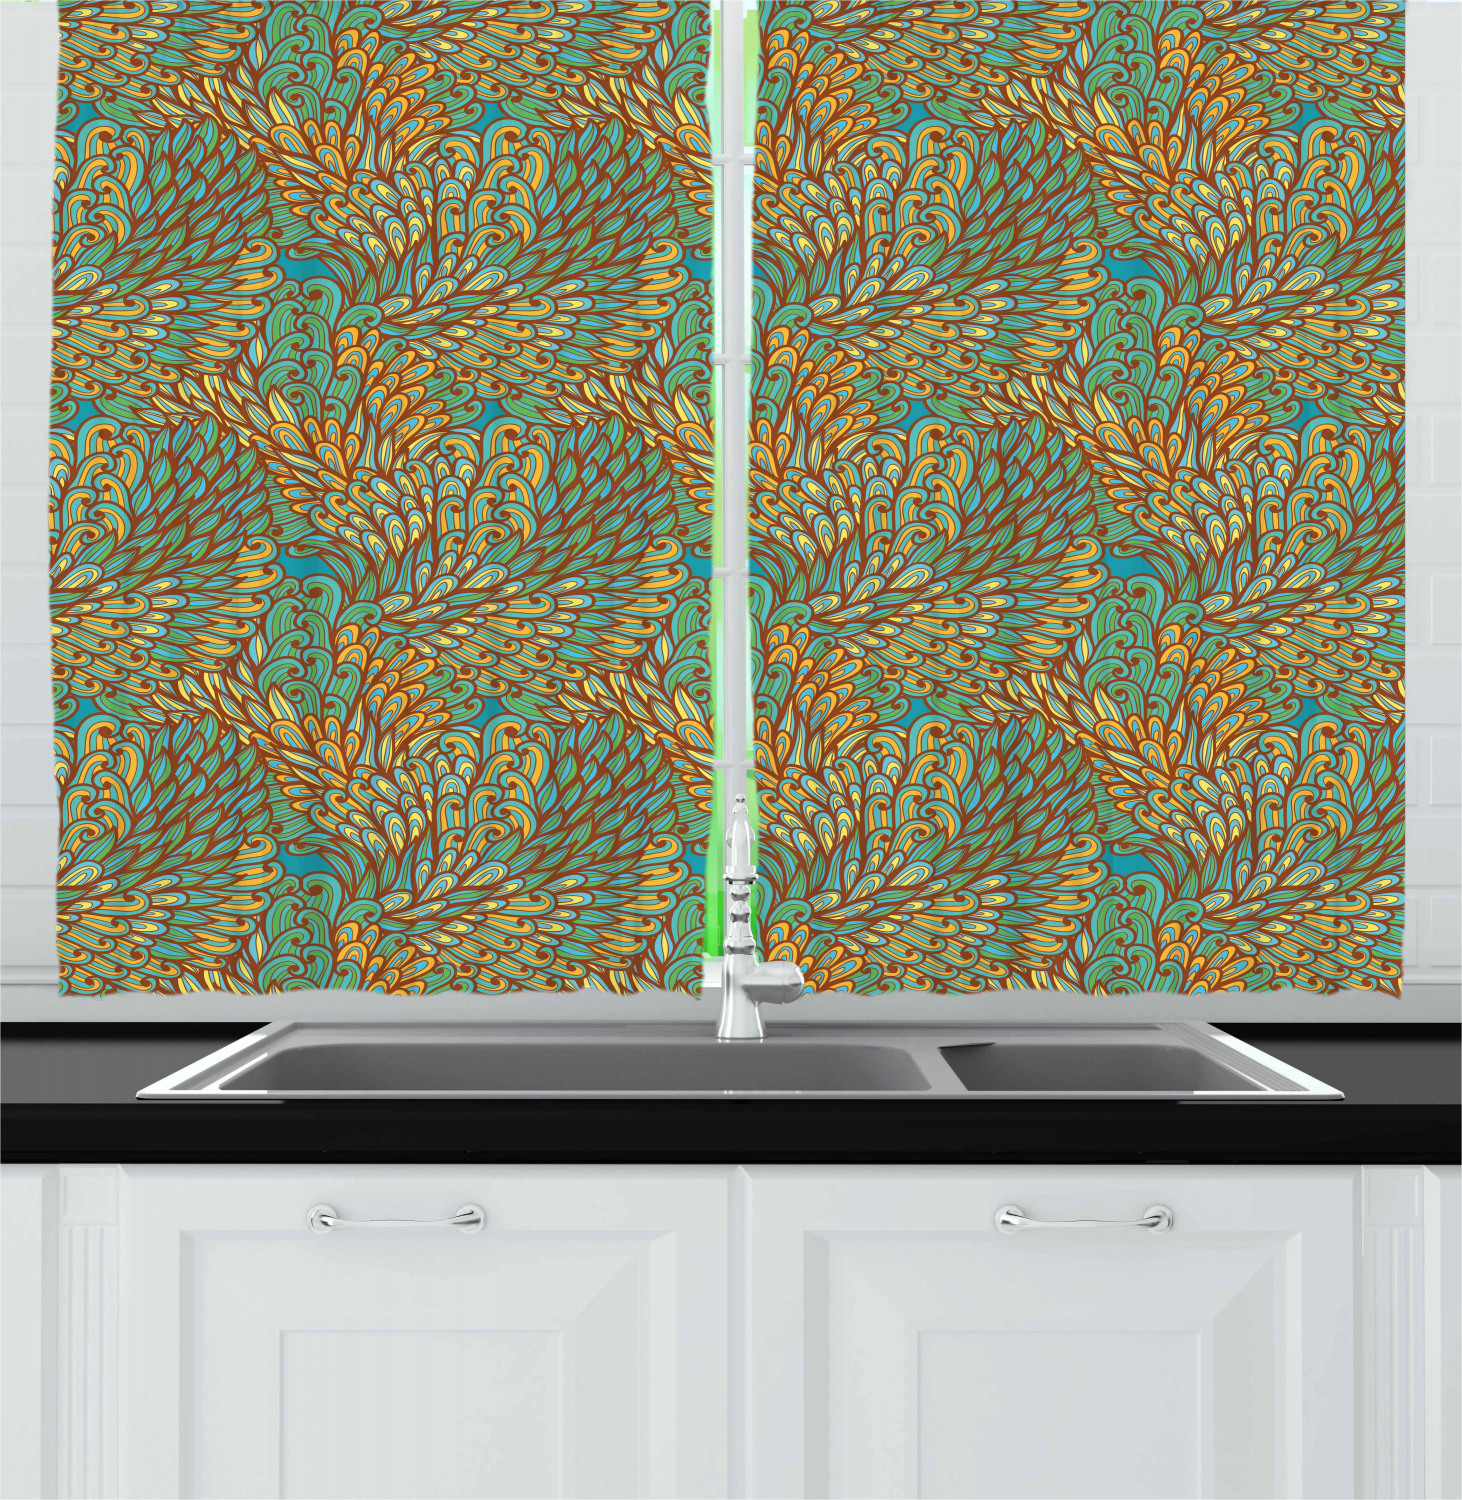 Blue And Yellow Kitchen Curtains: Blue And Yellow Kitchen Curtains 2 Panel Set Window Drapes